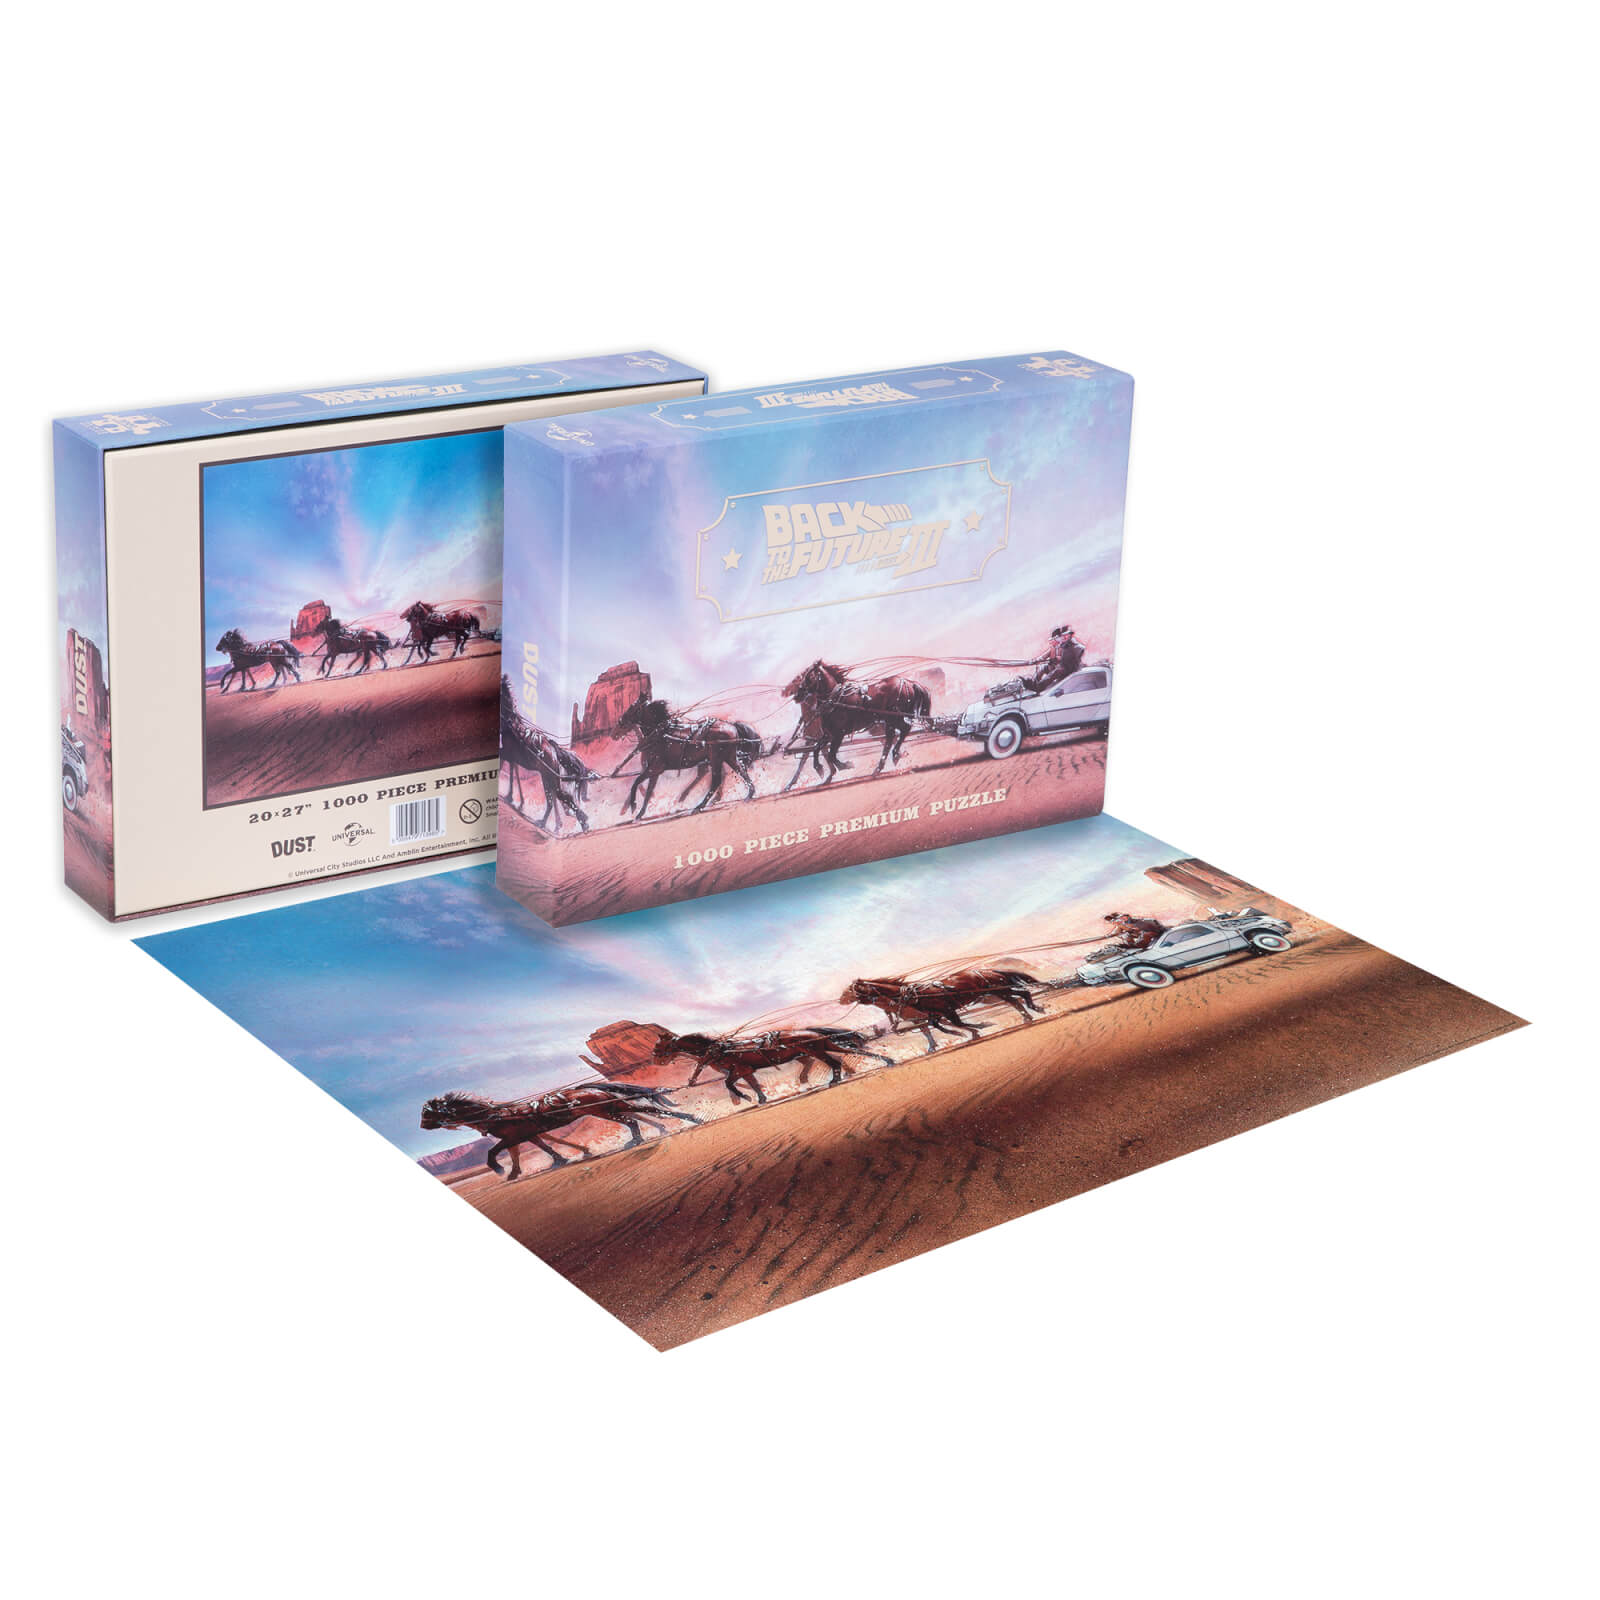 Image of Dust! Back To The Future 3 Adventure Through Time 1000pc Puzzle - Zavvi Exclusive